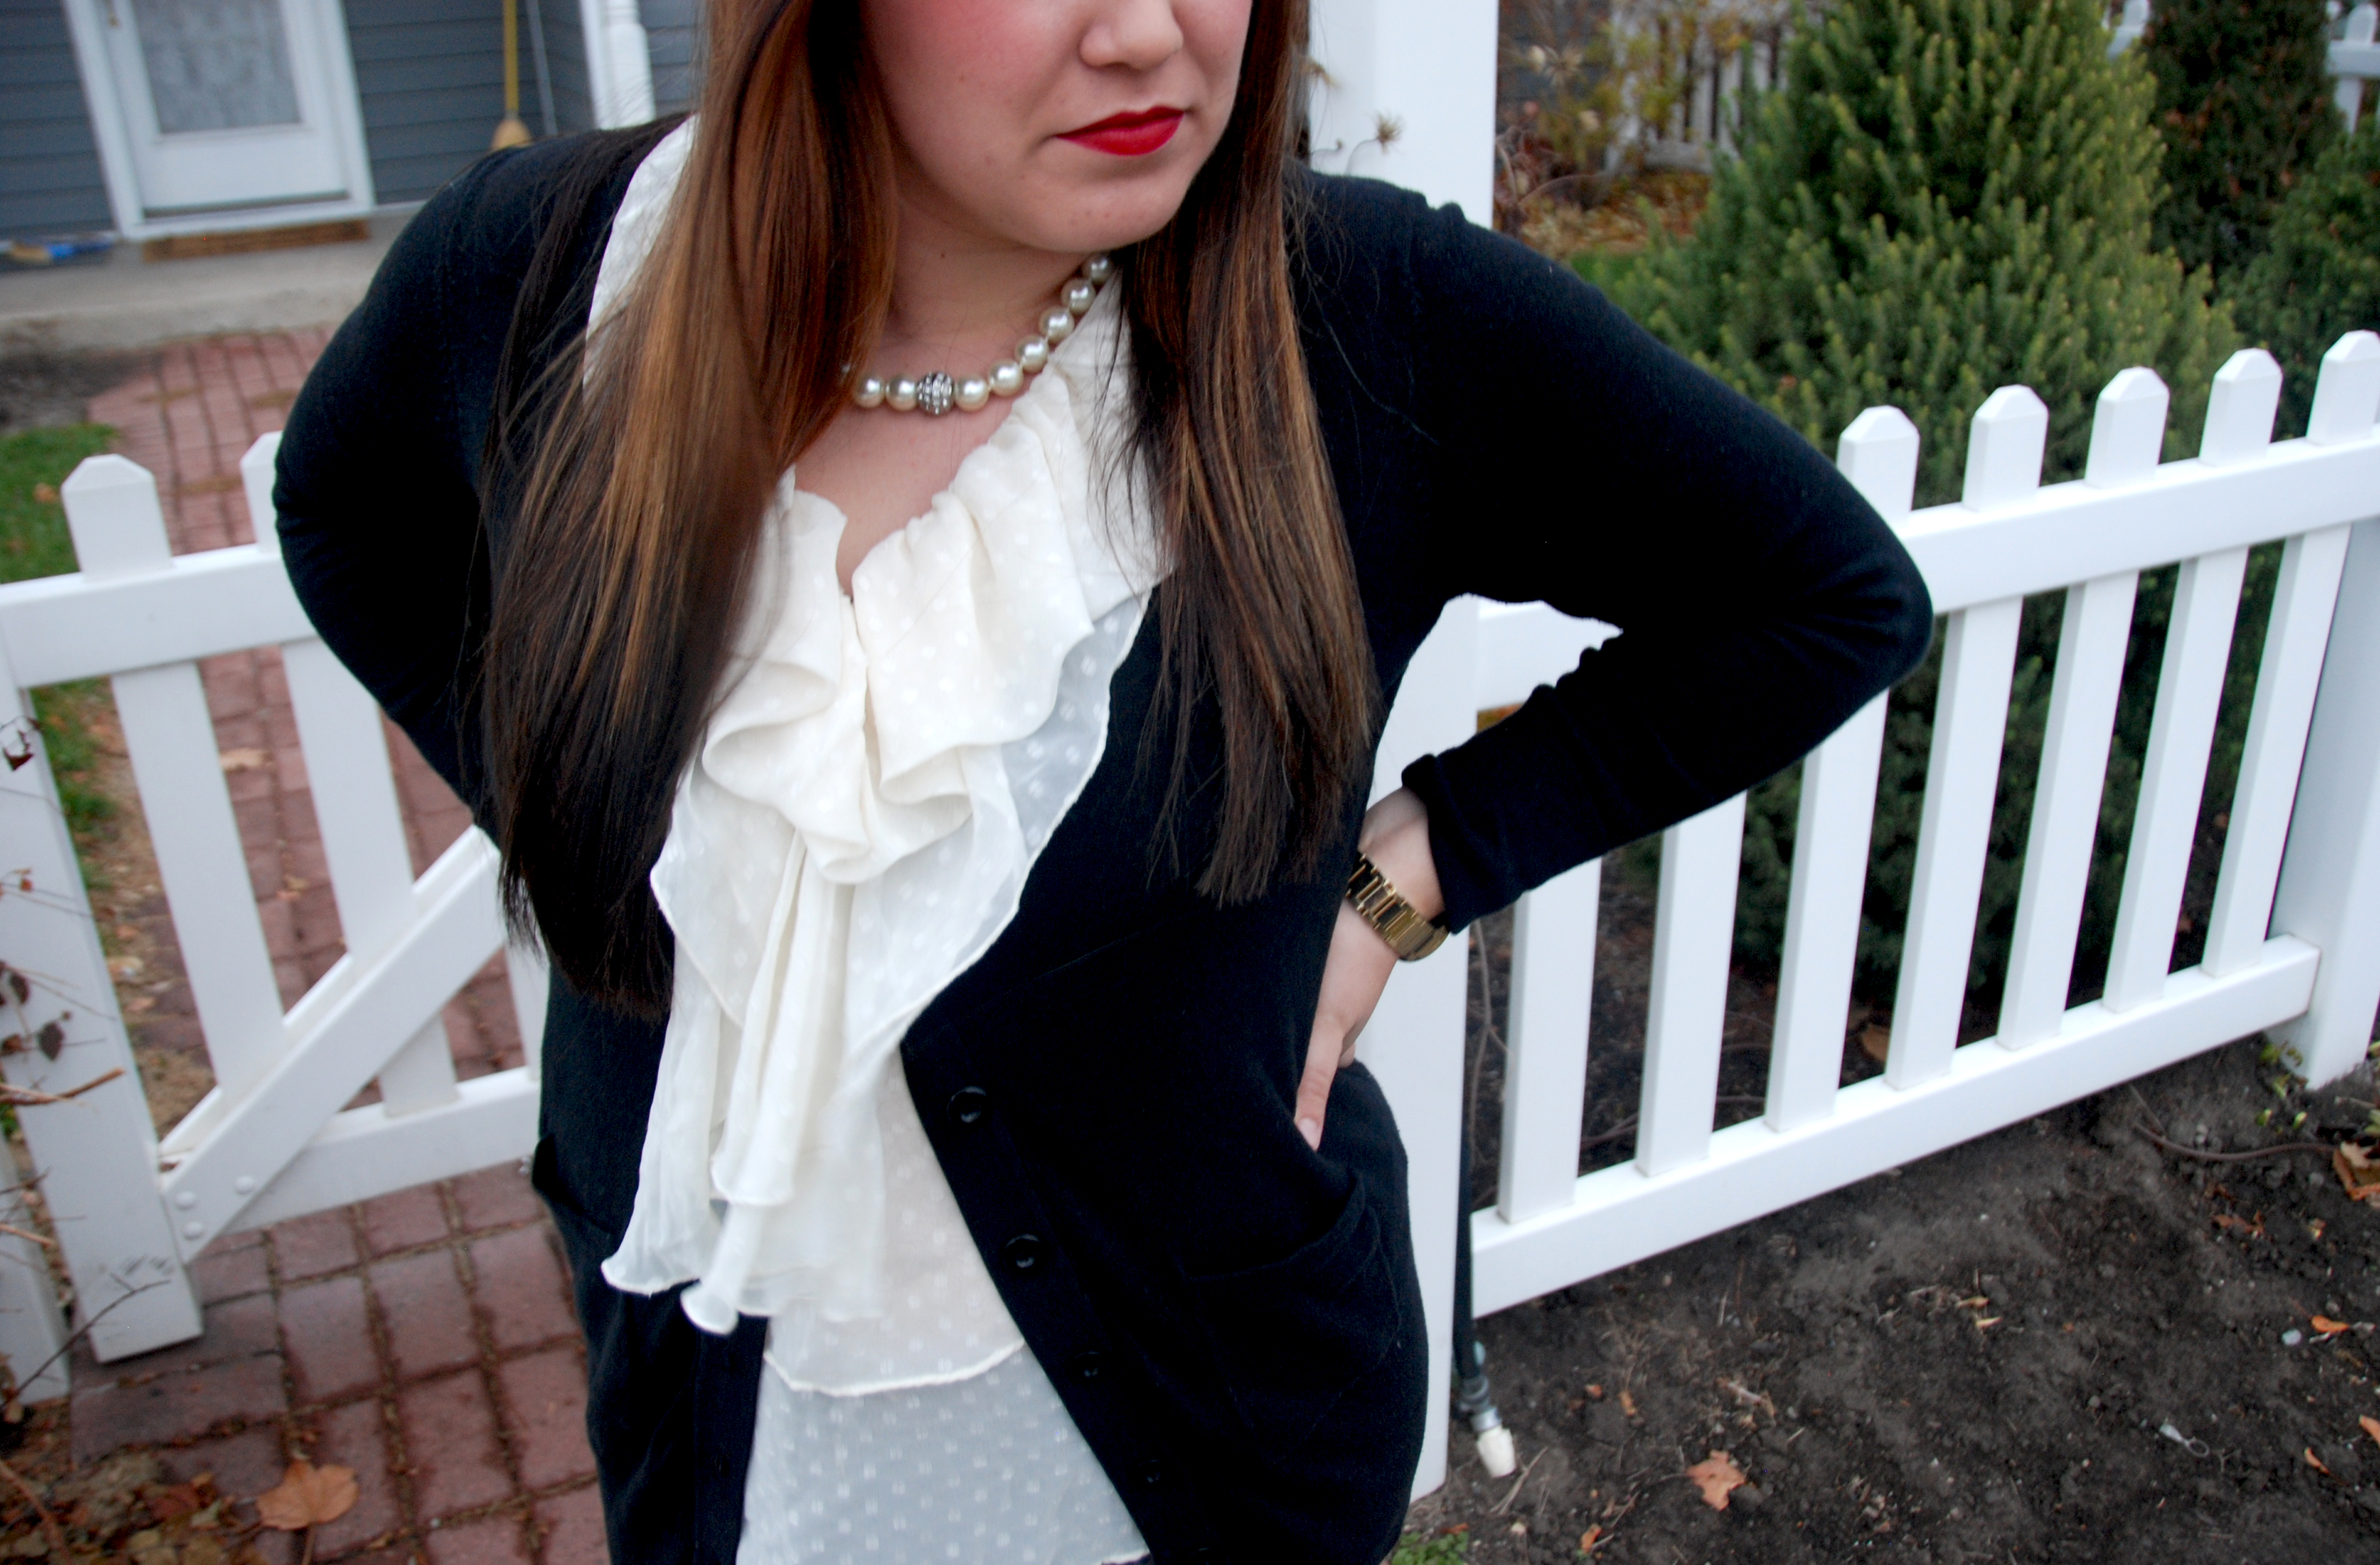 e509e971ae1 sweater  Nordstrom Rack jeans  H M (similar) boots  J. Crew necklace  gift  lipstick  Anthropologie